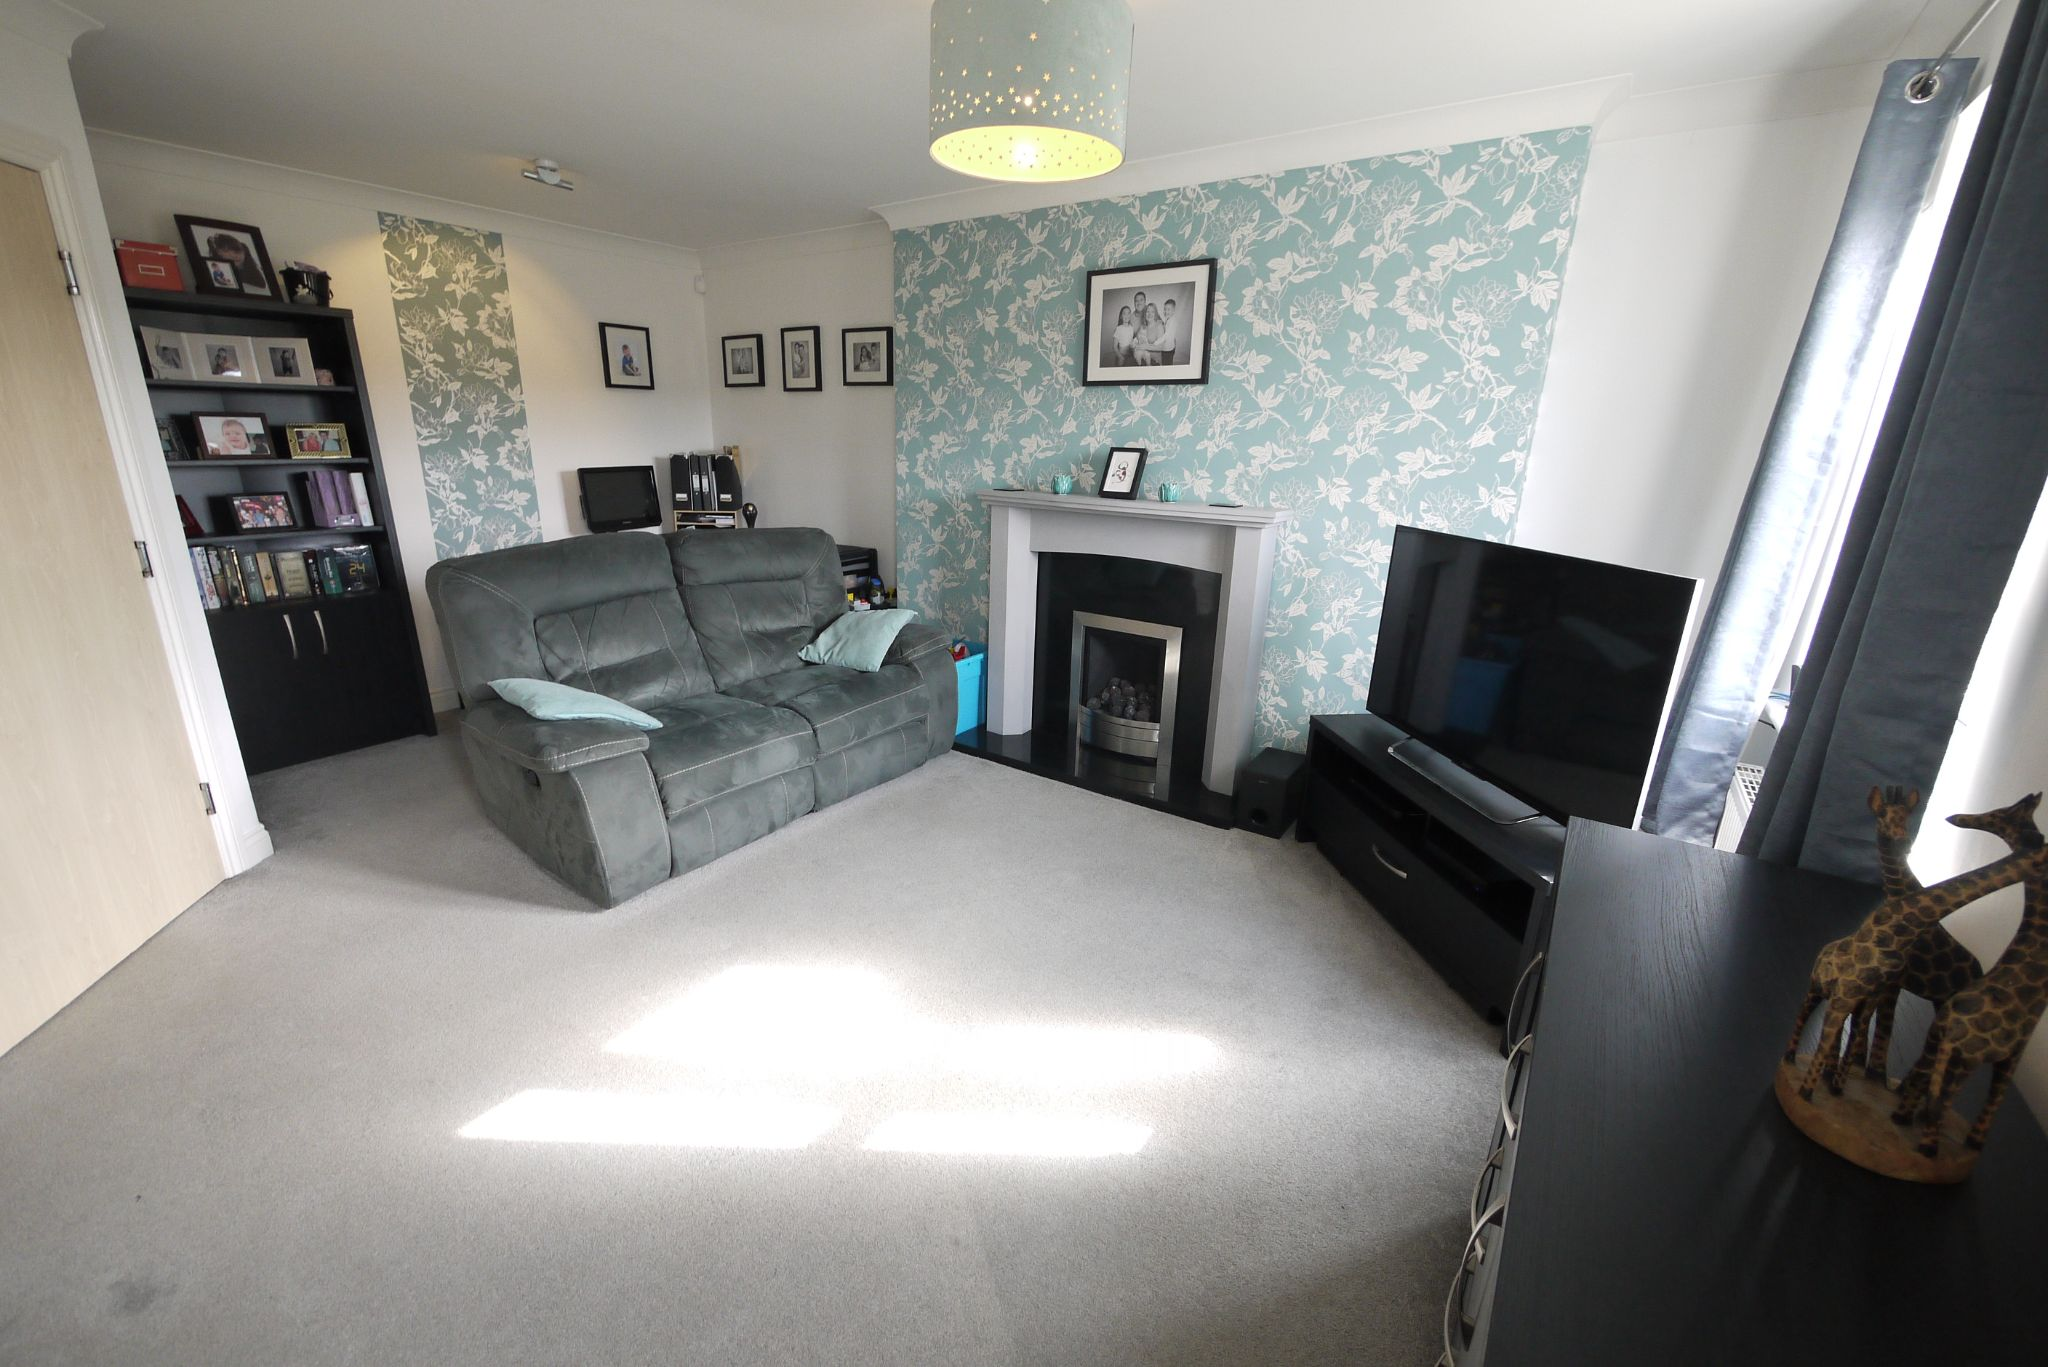 4 bedroom town house SSTC in Brighouse - Lounge 2.